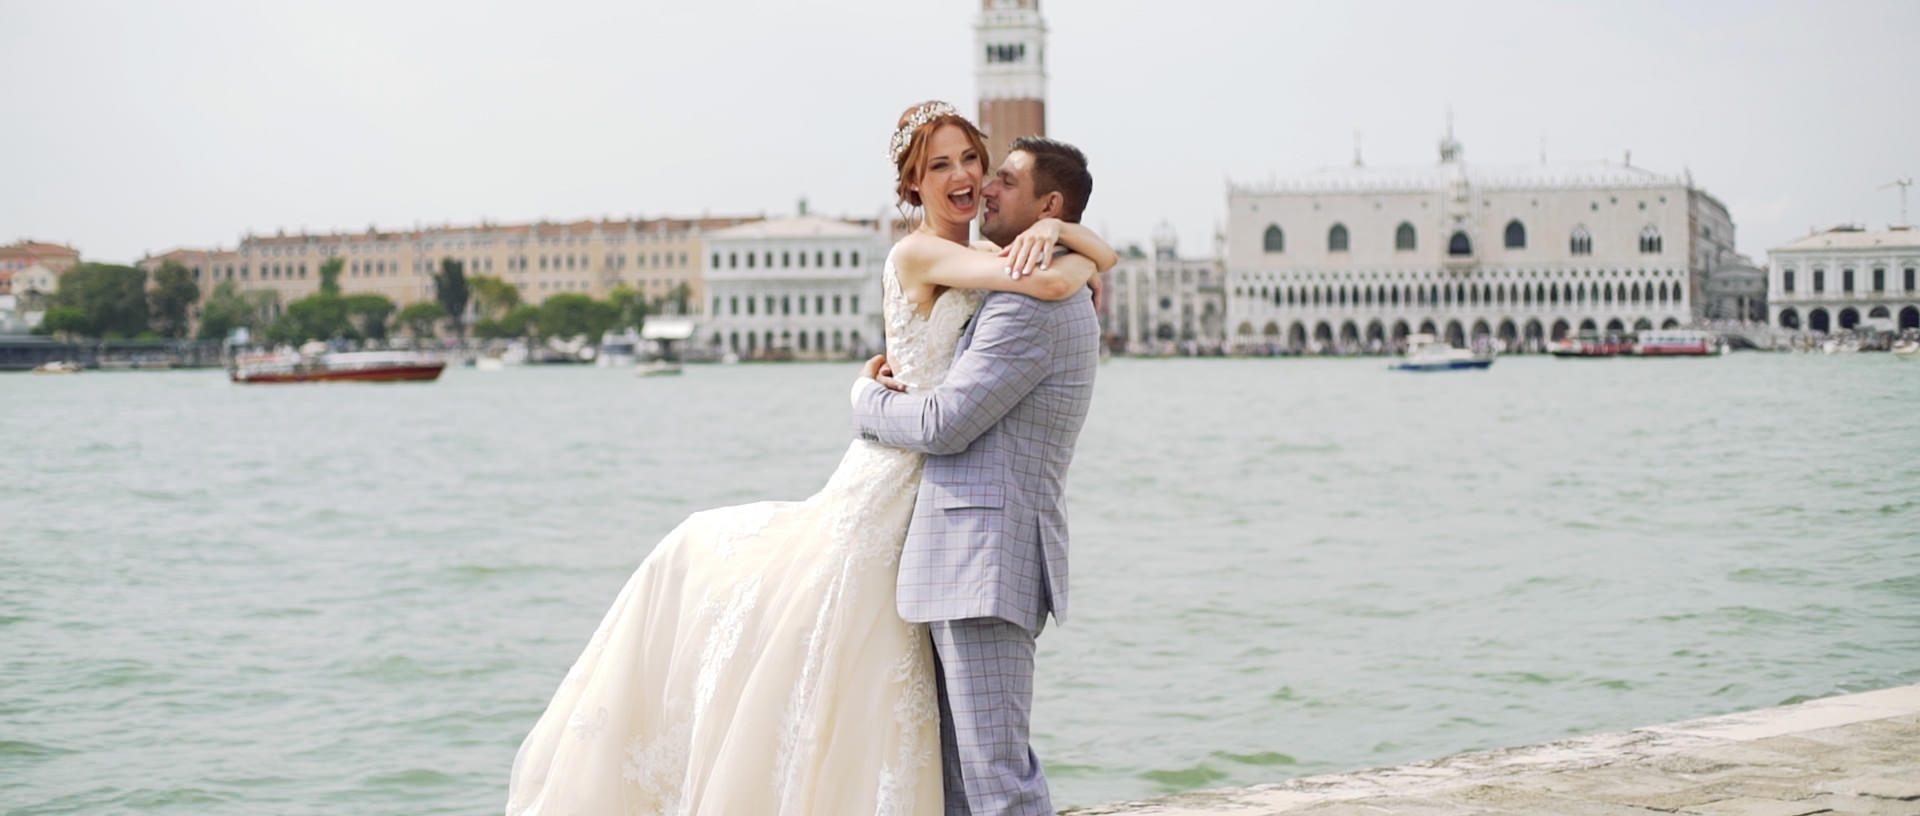 Garden Wedding in Venice